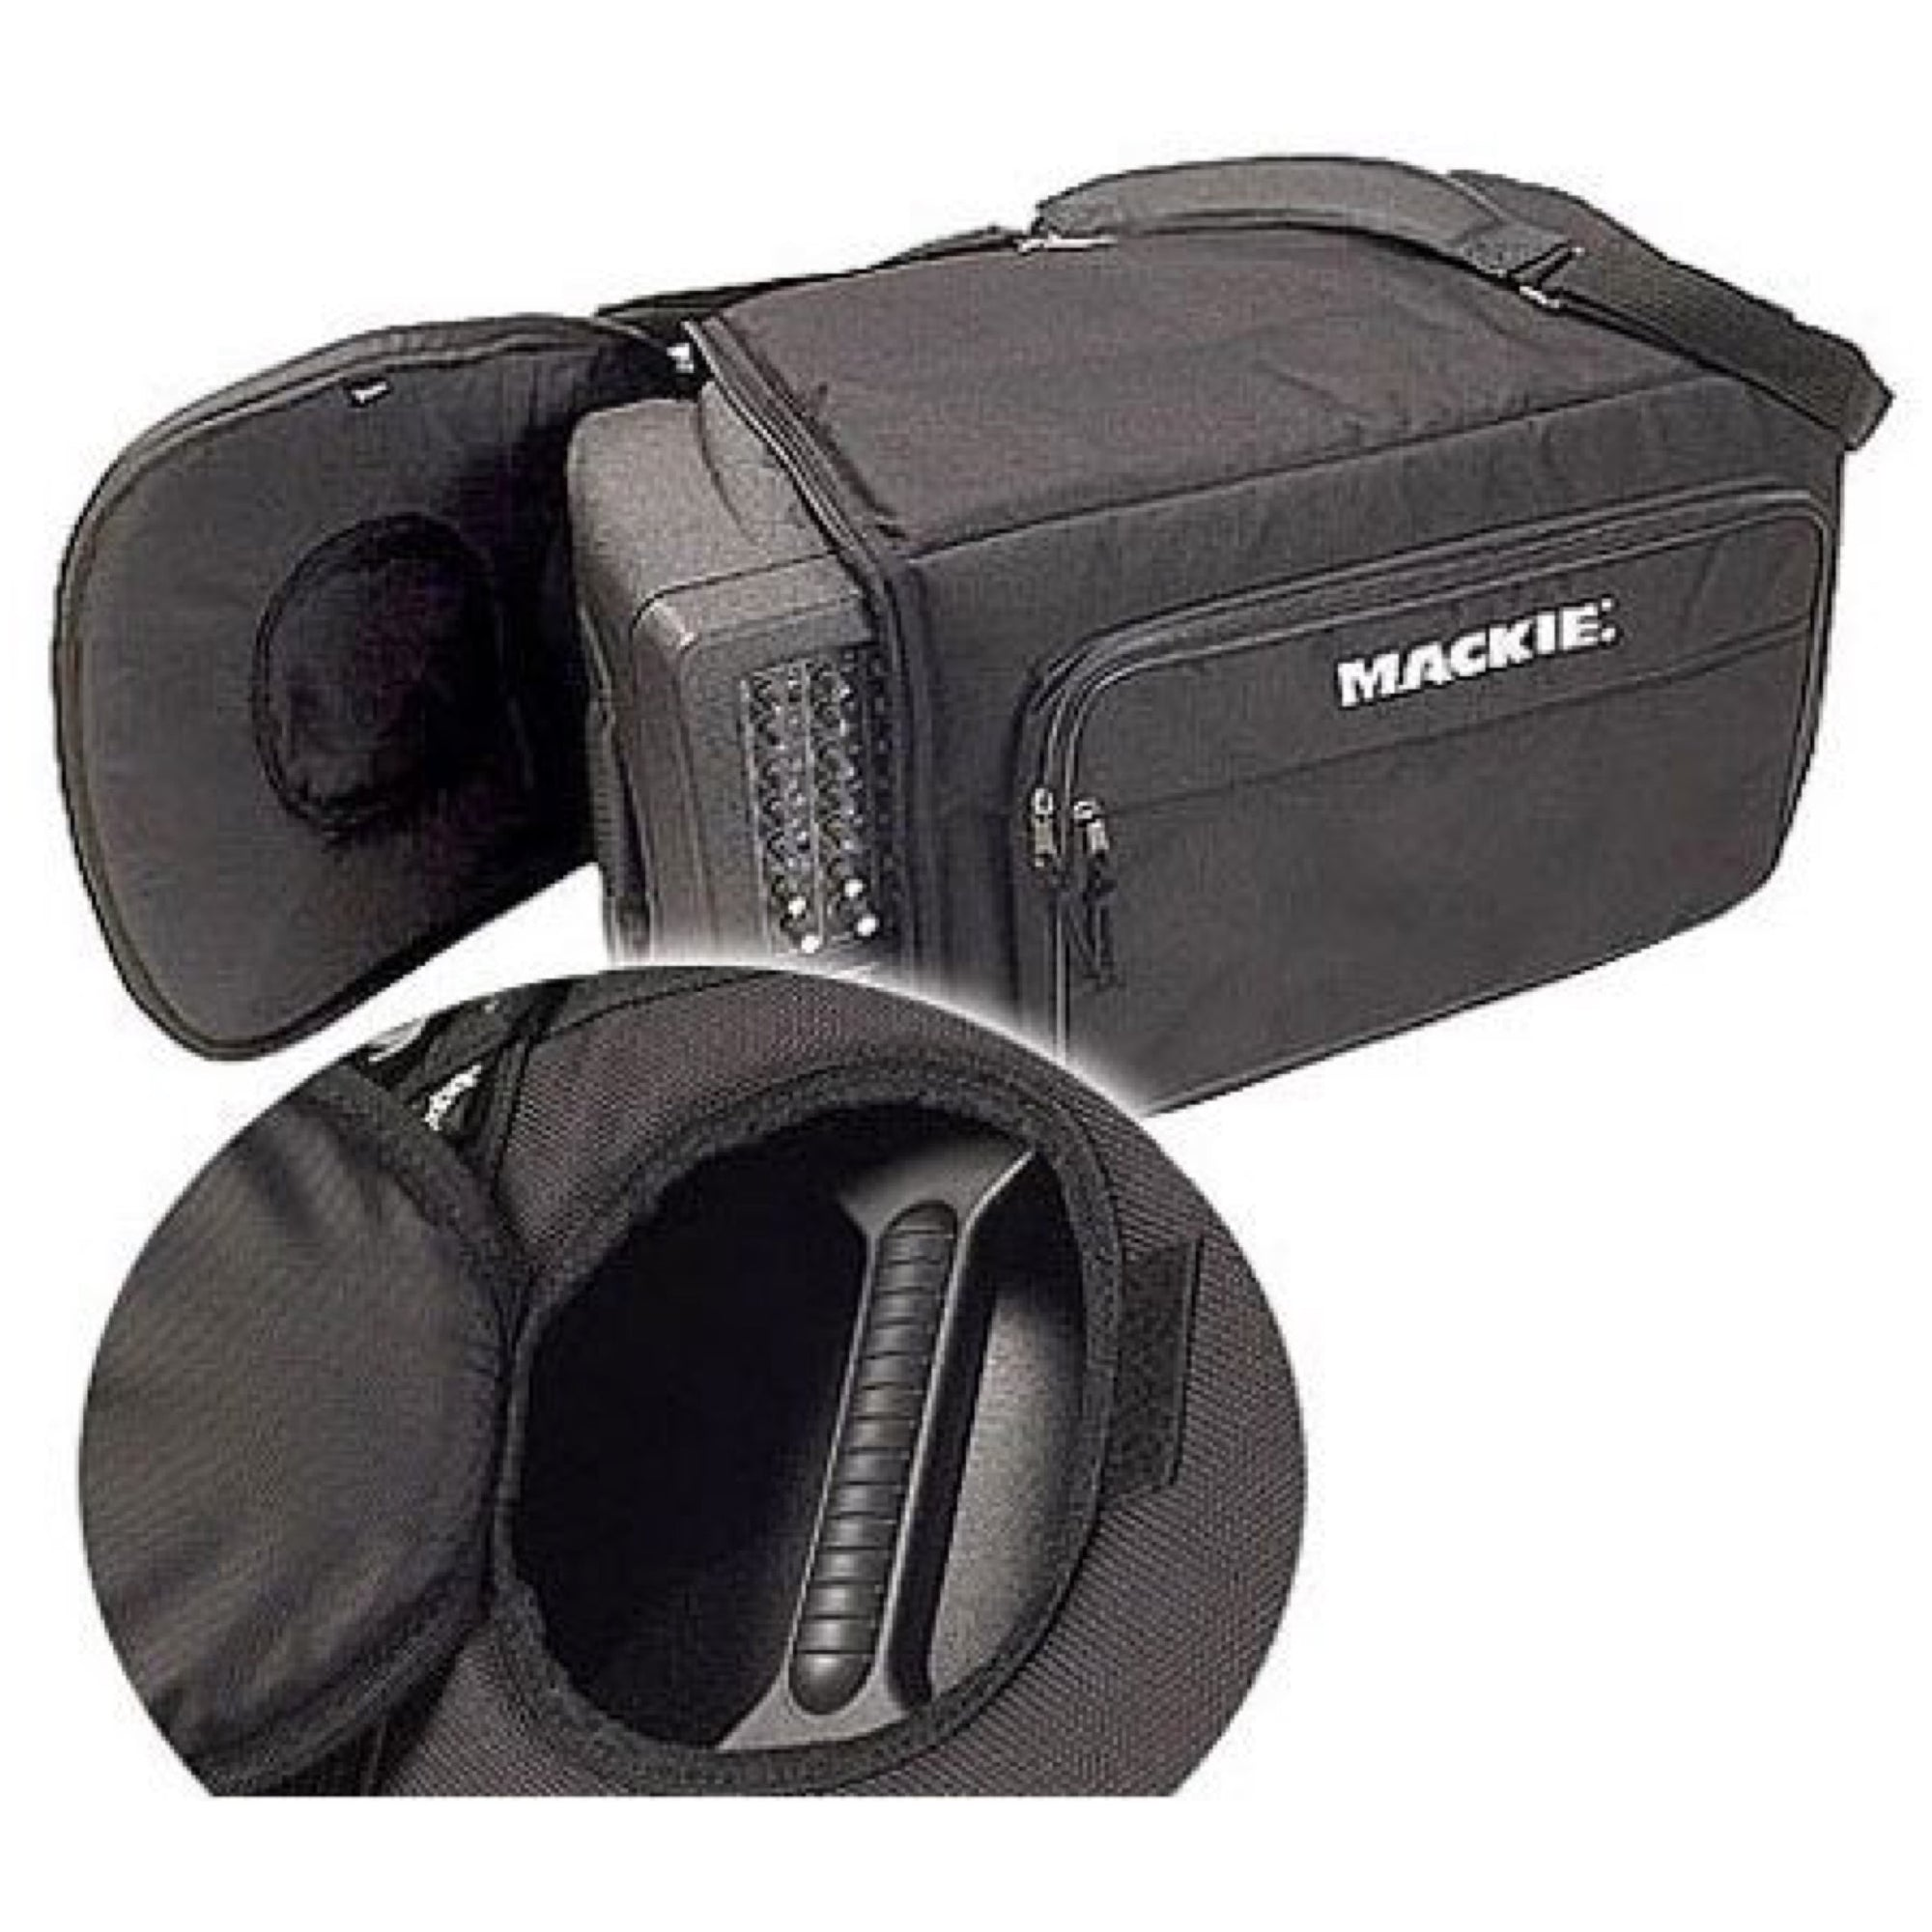 Mackie Mixer Bag for PPM Series Bag